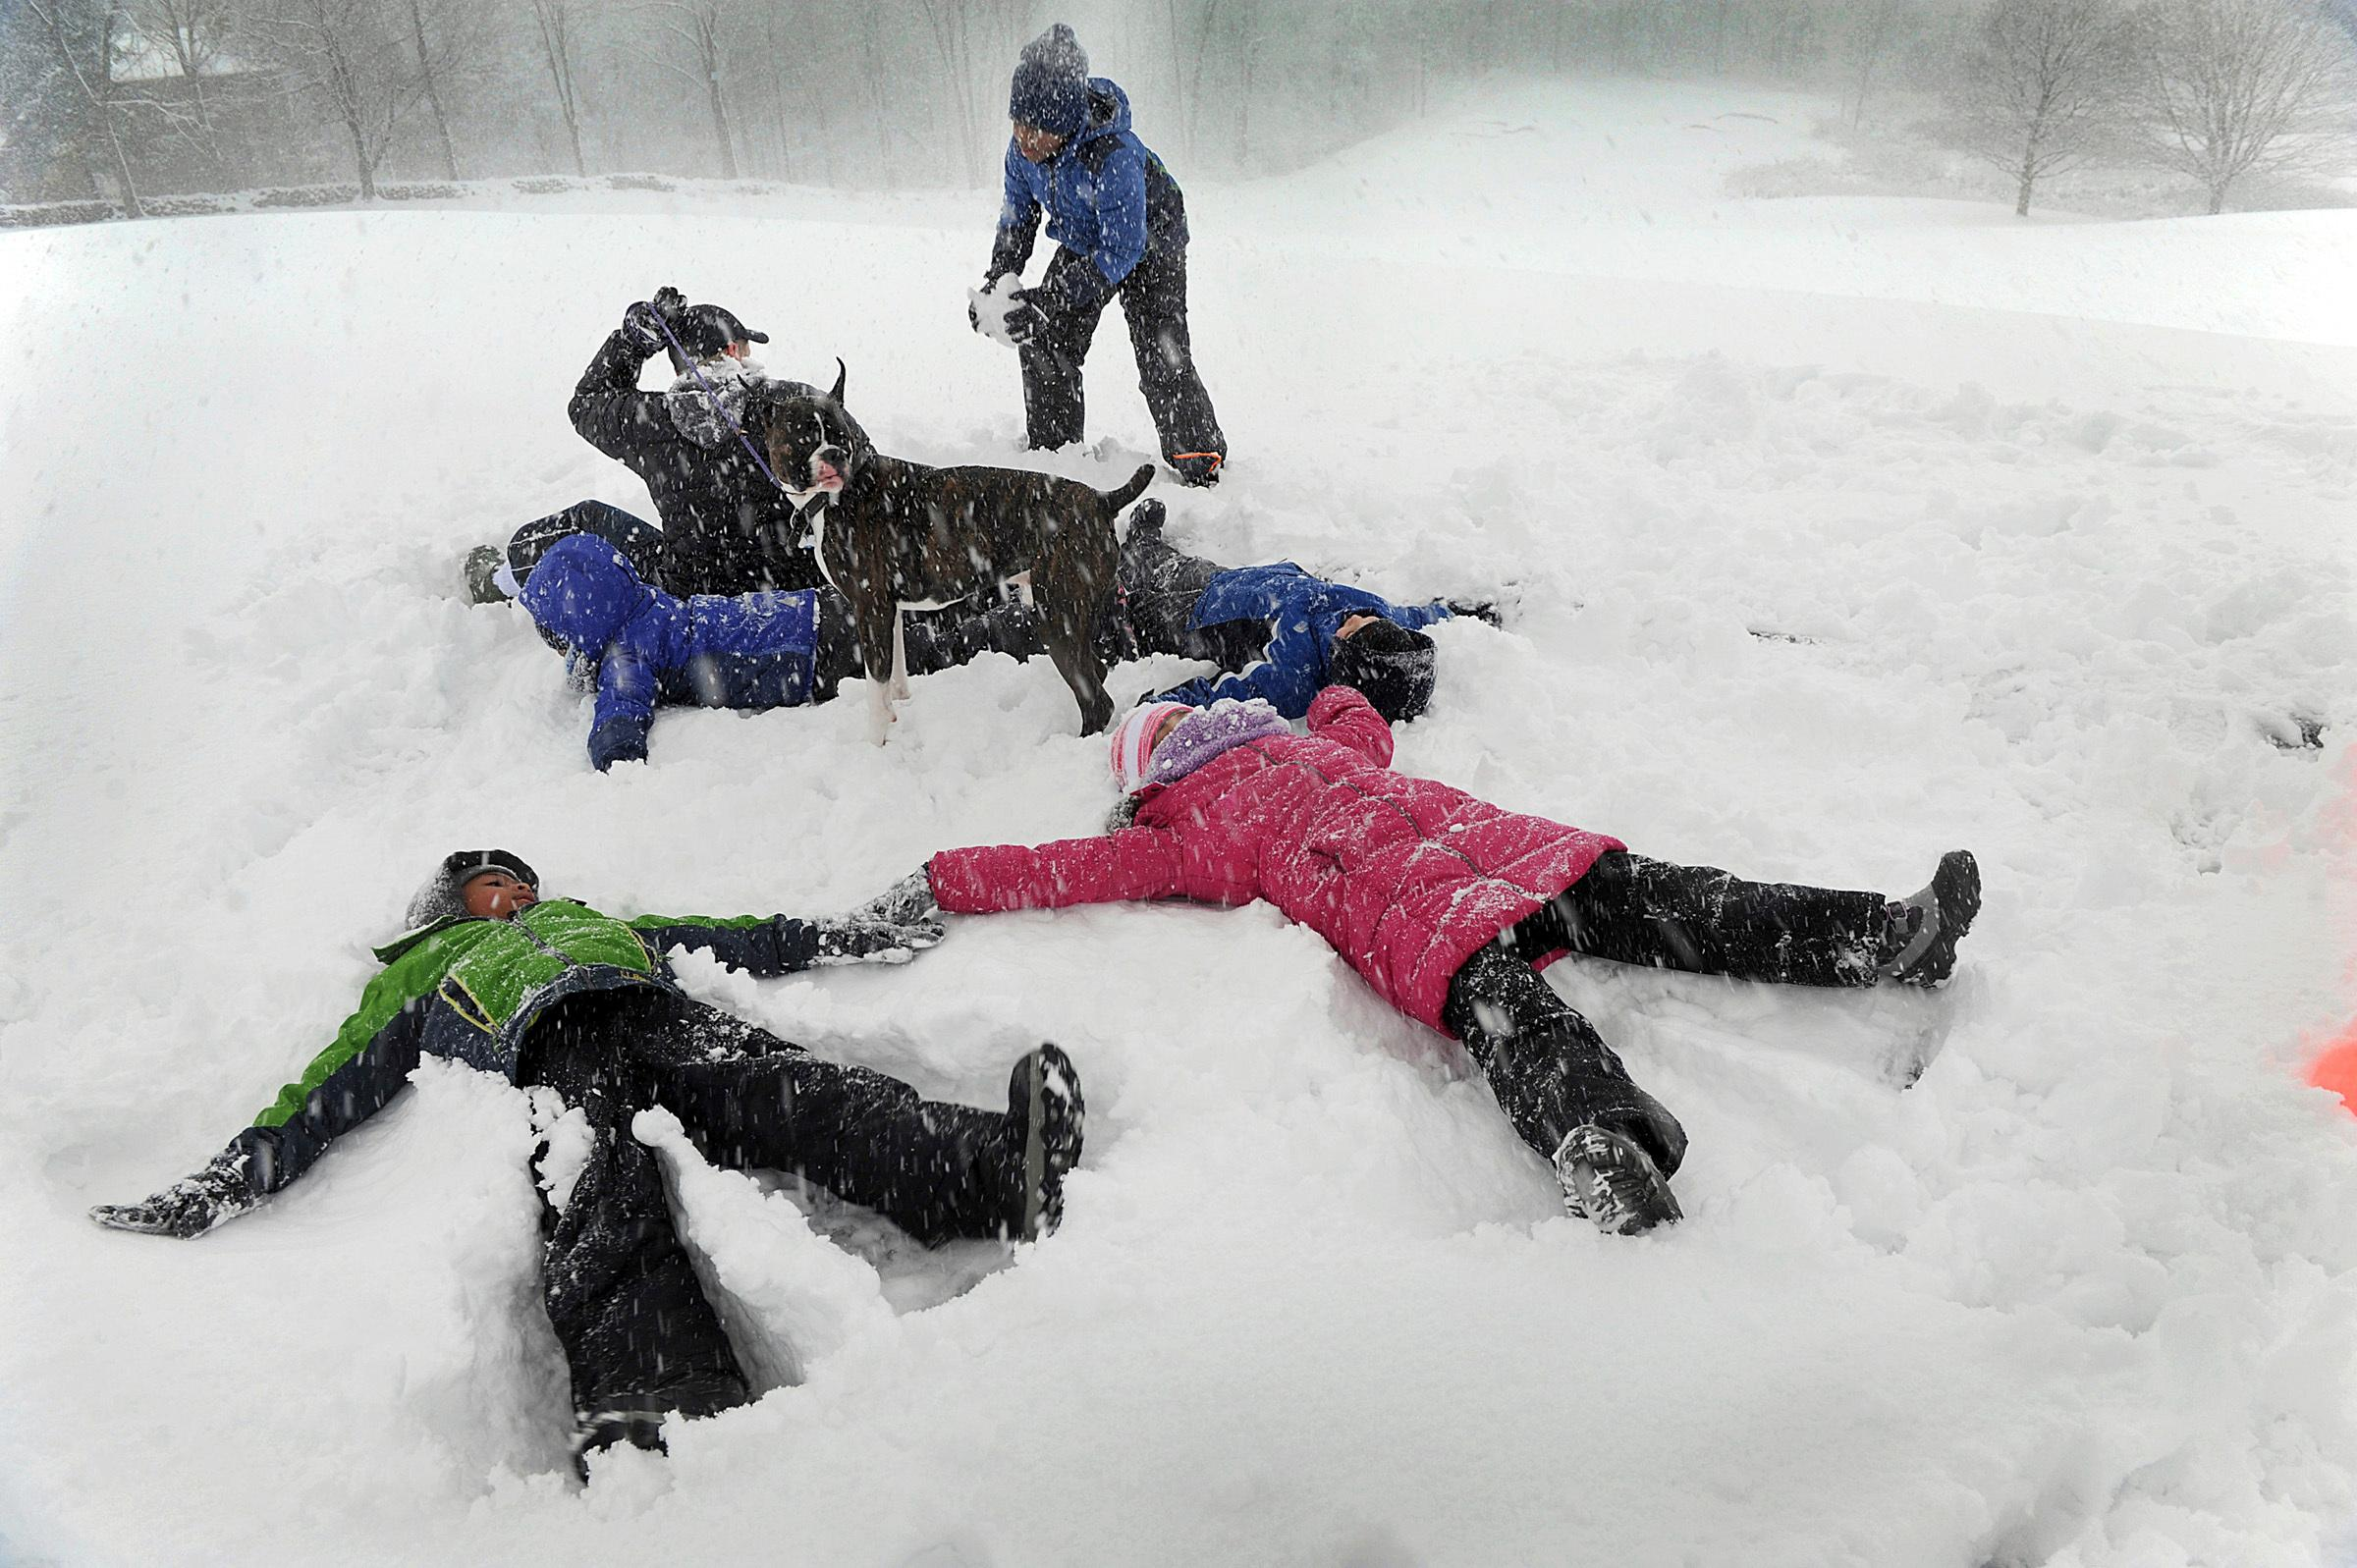 The Hilderbrand family, Gianni DeMasi-Hilderbrand, 6, front left, and Olivia Hilderbrand, 9, right, plays in the snow making snow angels at Richter Park in Danbury, Conn., during Wednesday's snowstorm, March 7, 2018. (Carol Kaliff/Hearst Connecticut Media via AP)